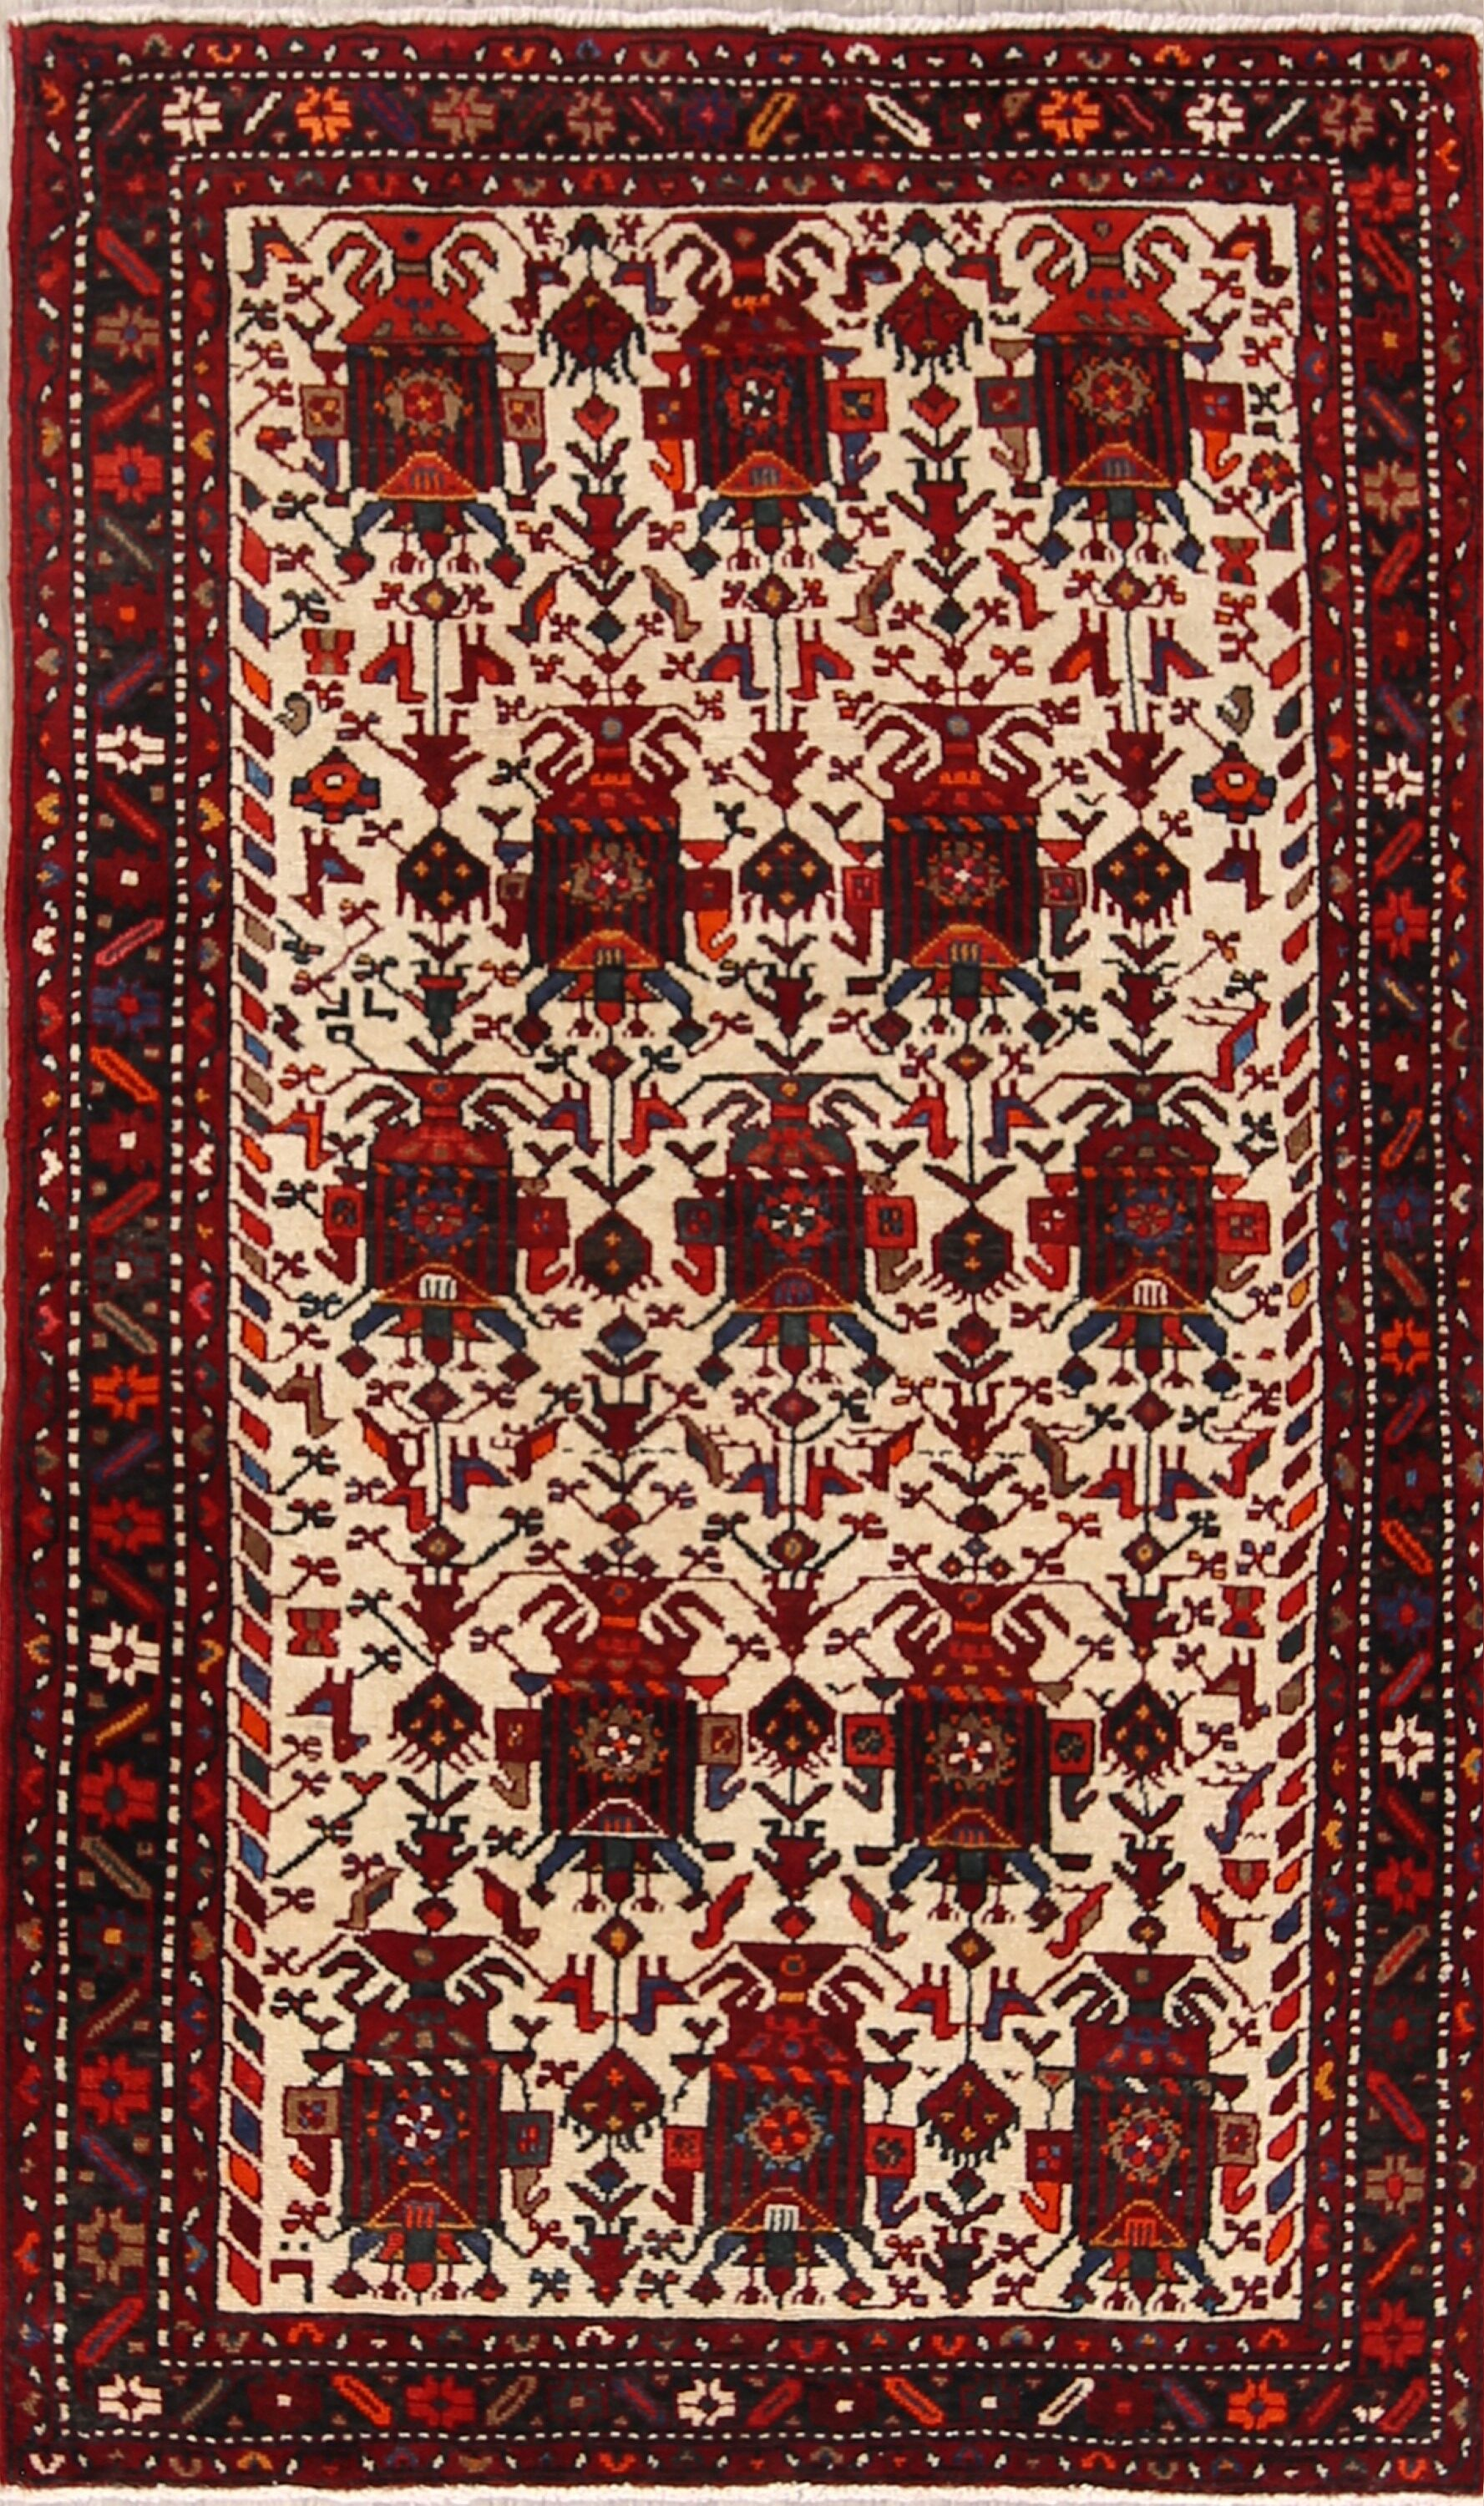 One-of-a-Kind Traditional Geometric Tribal Gharajeh Persian Hand-Knotted 4'1